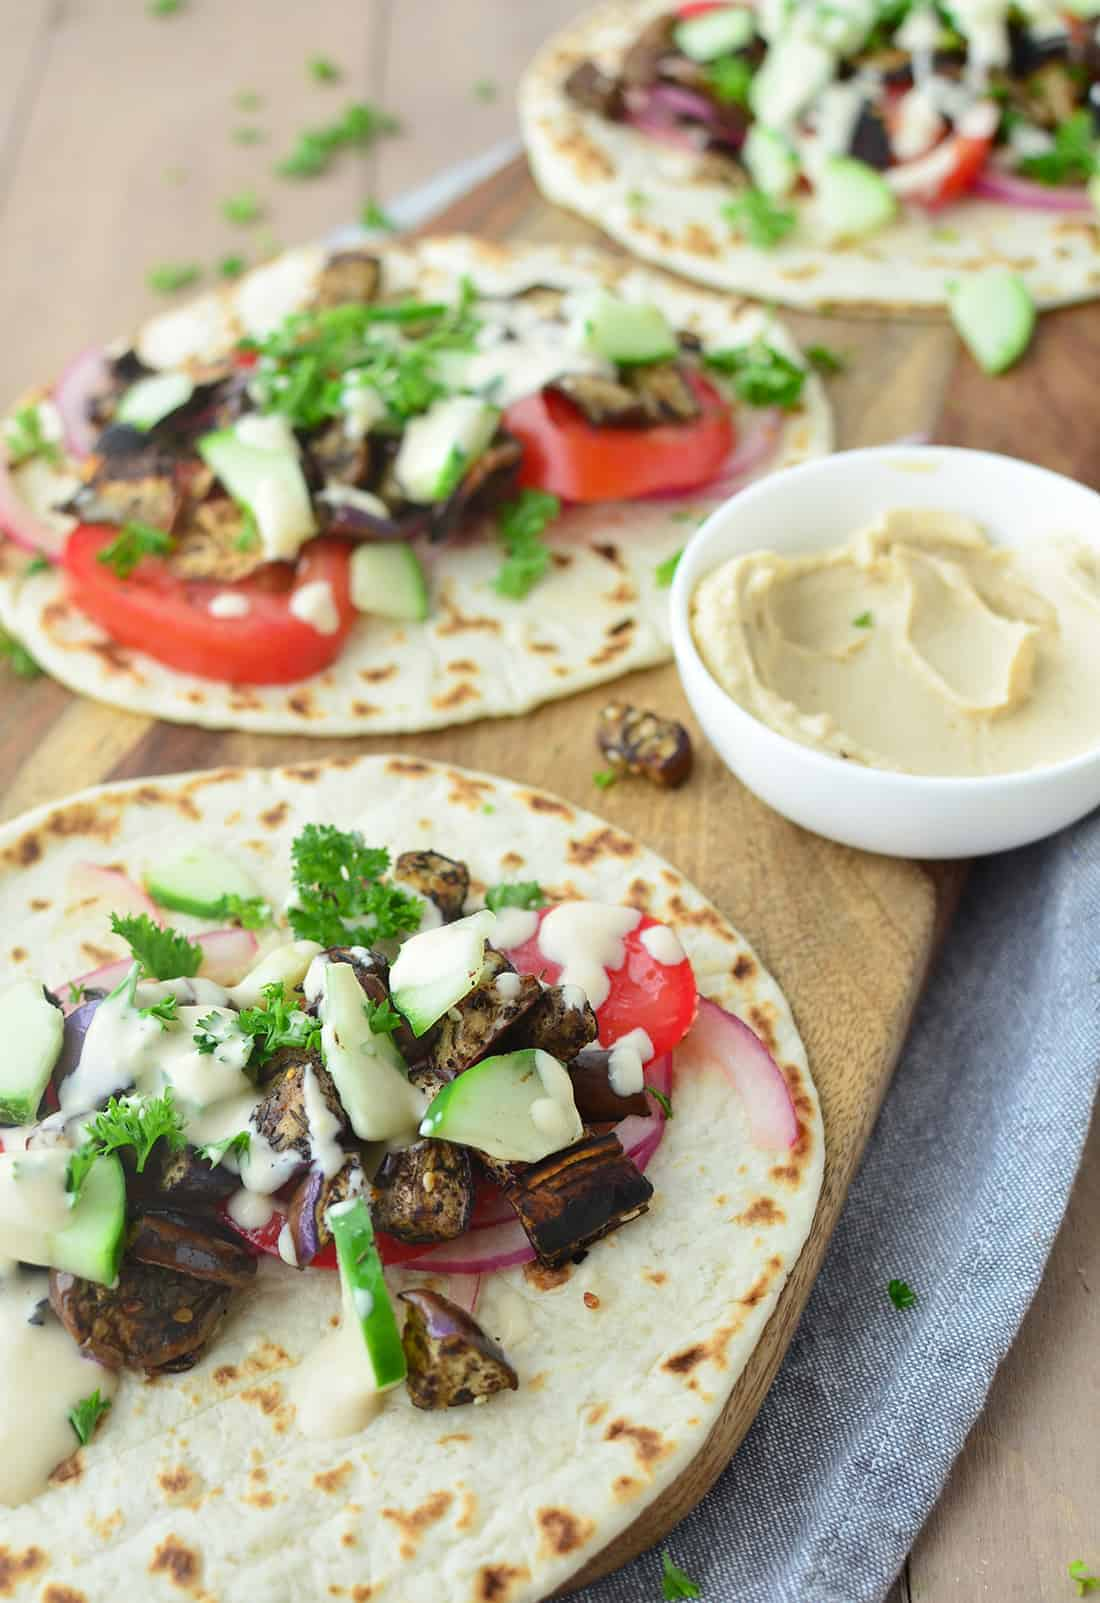 Vegan Eggplant Gyros! Zaatar seasoned eggplant stuffed into warm pita and topped with juicy tomatoes, crisp cucumbers and the BEST hummus-dill sauce. You've gotta try these! #vegan #vegetarian #healthy #sandwich | www.delishknowledge.com